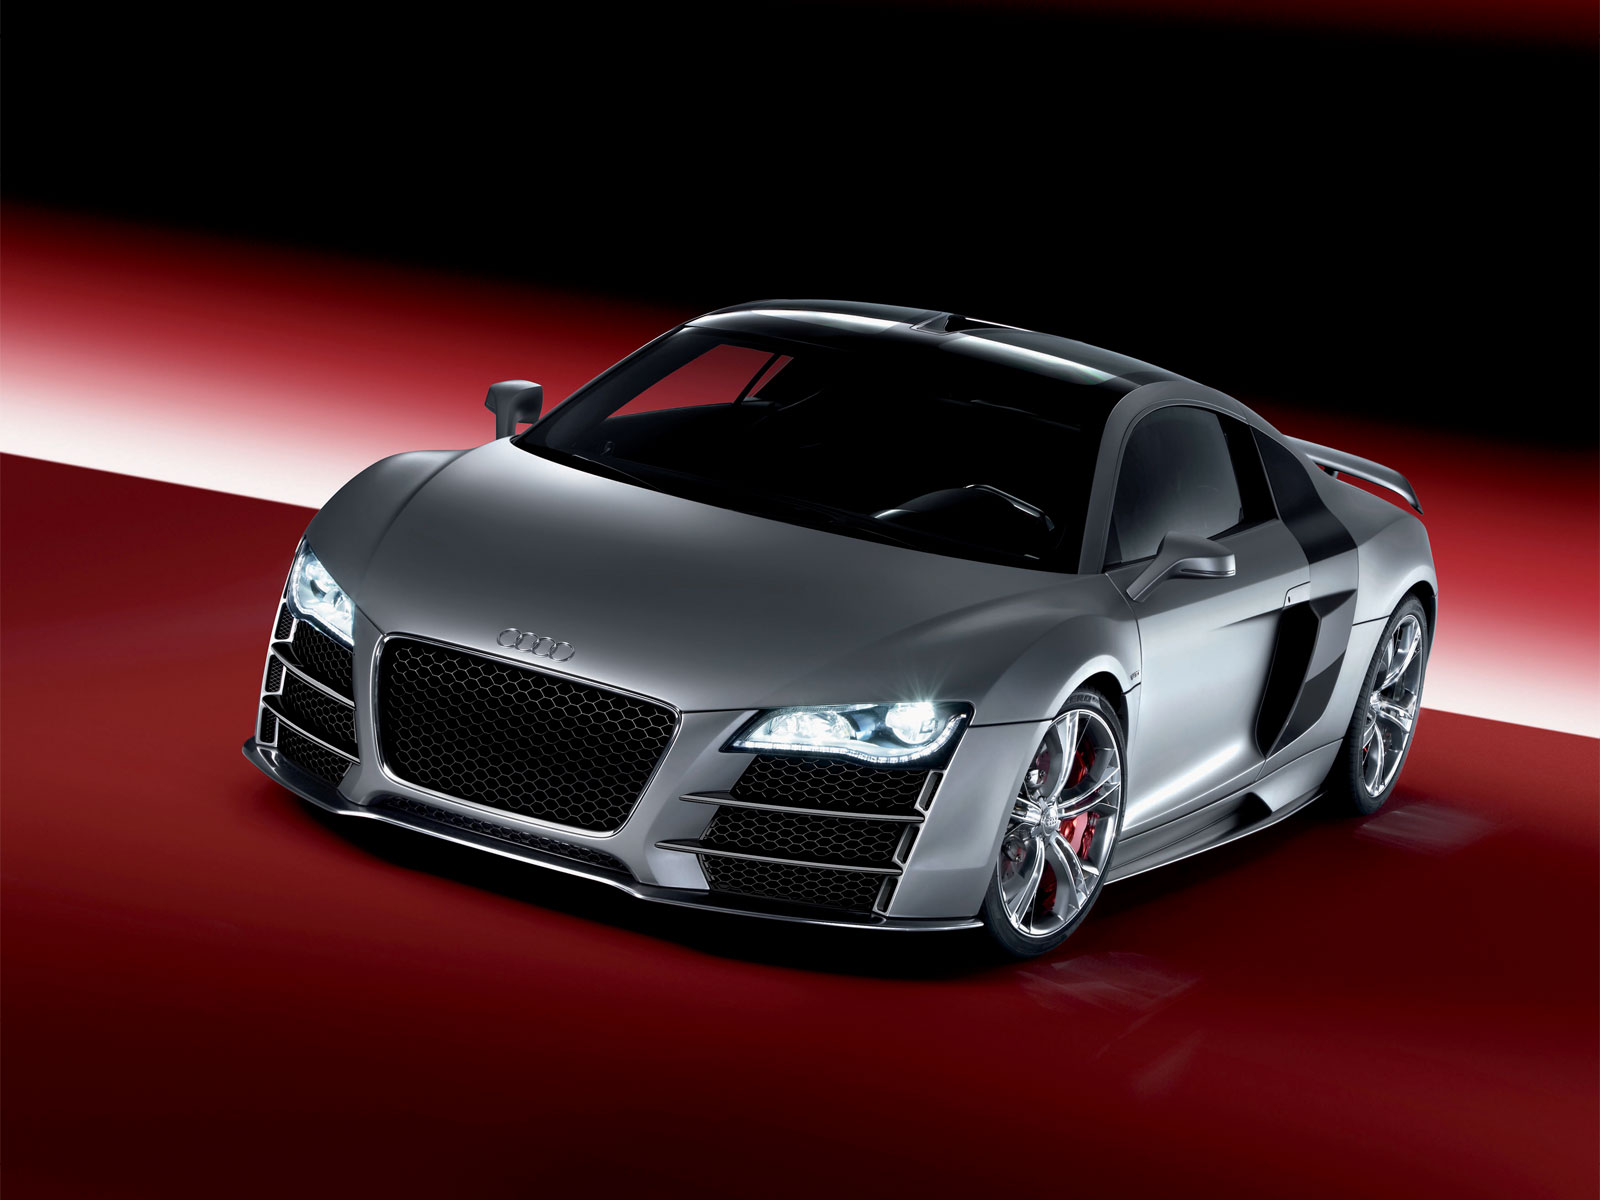 audi r8 v12 wallpaper  Cars Hd Wallpapers